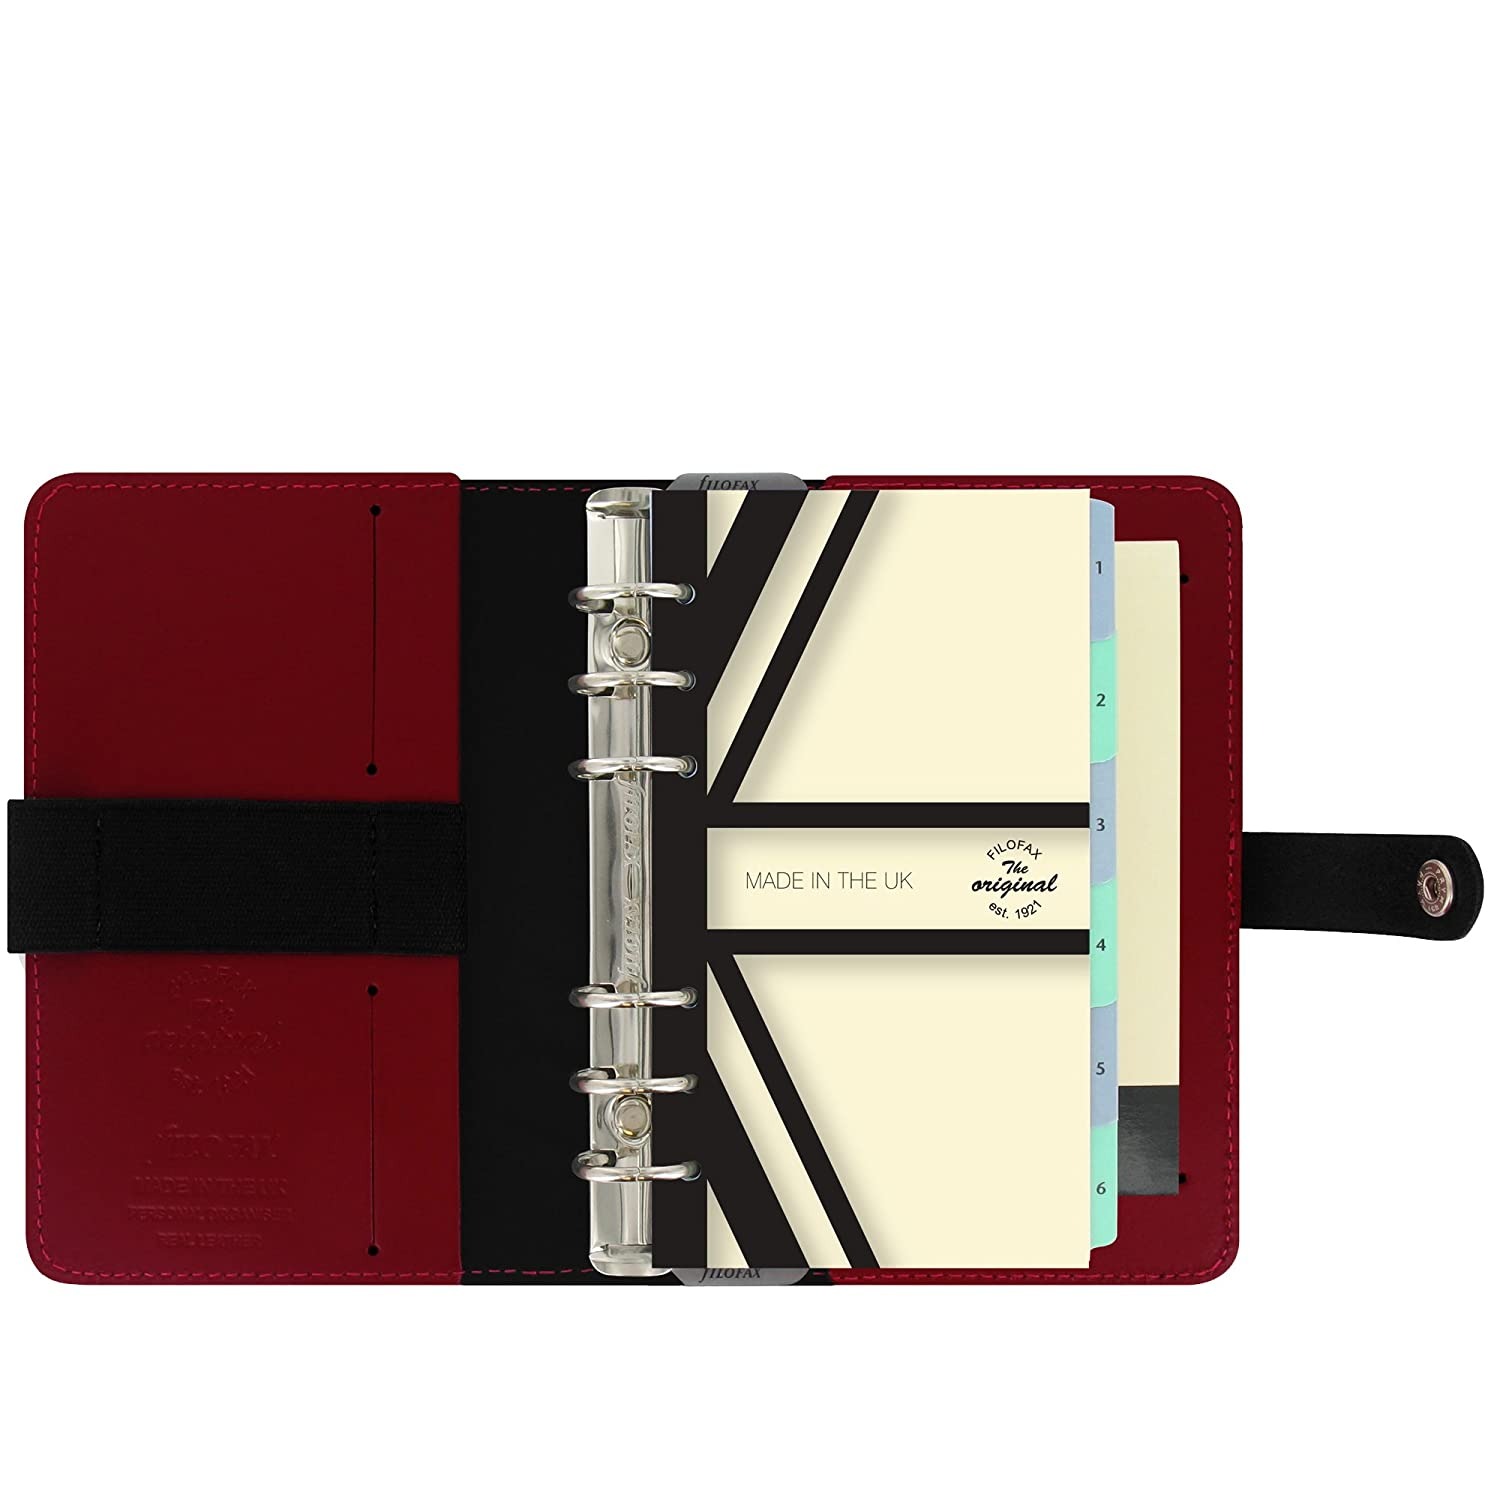 Filofax The Original Personal Organiser - Red